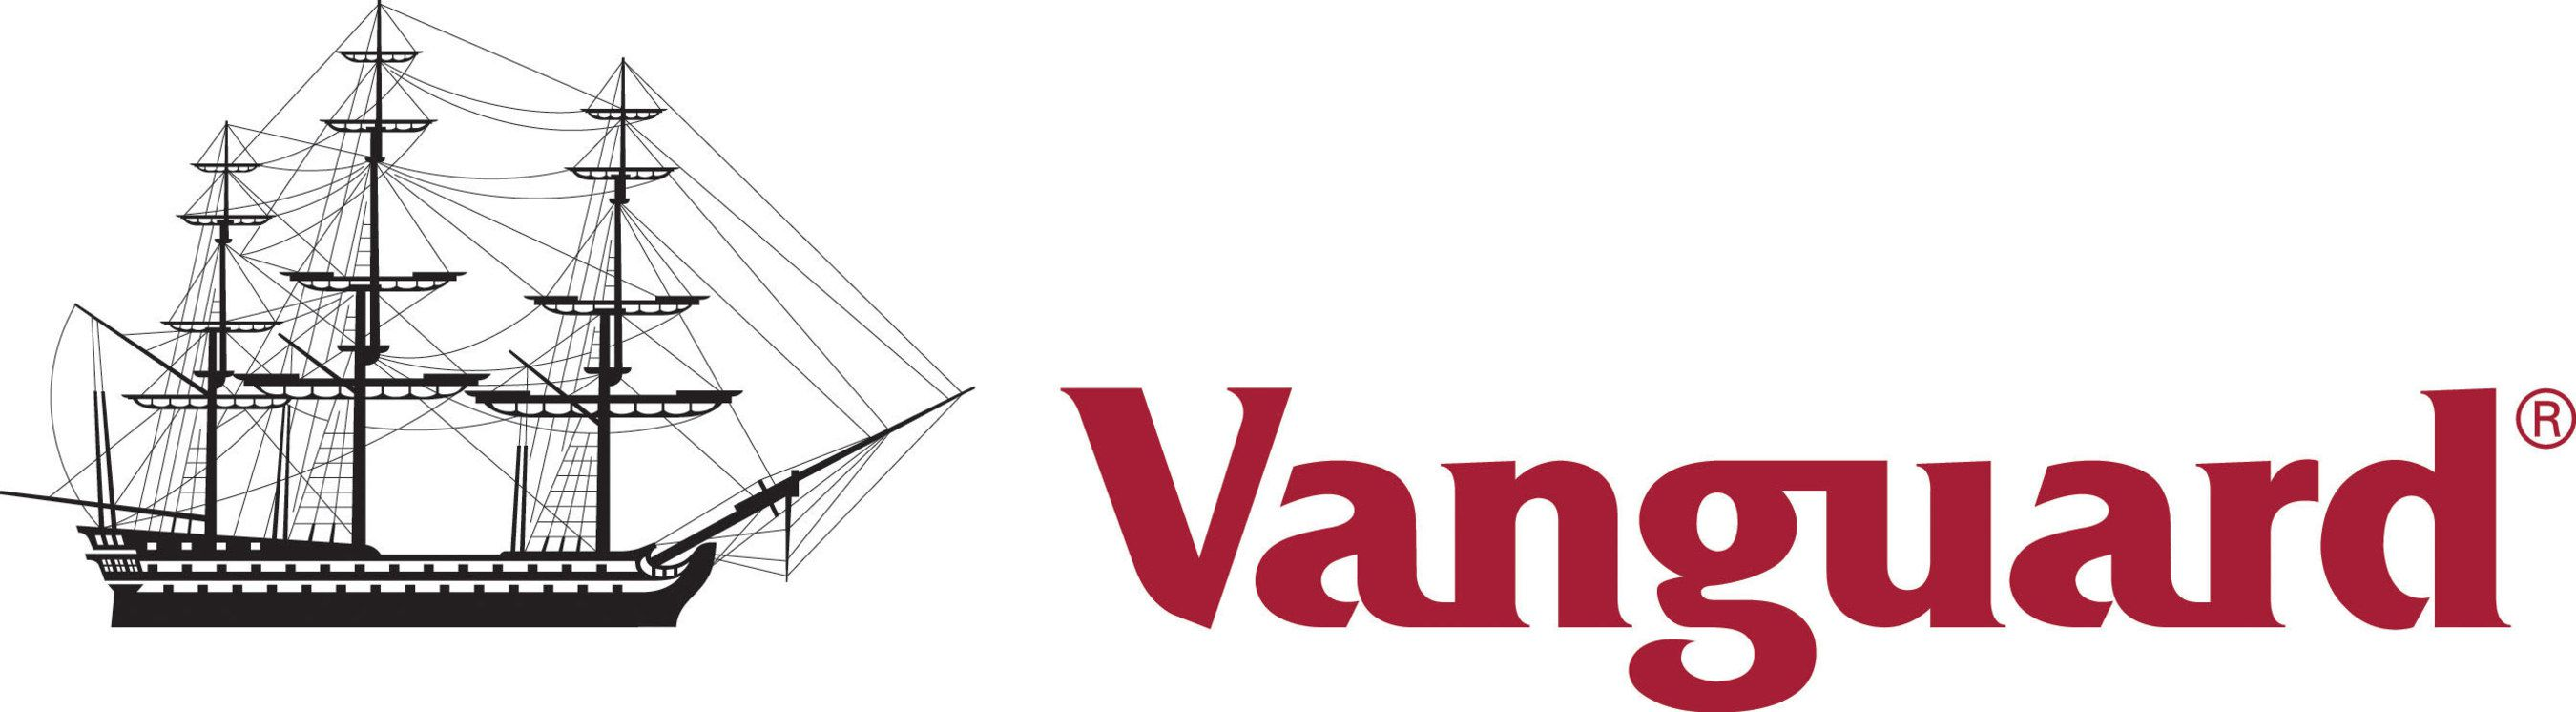 Vanguard Personal Advisor Services vs. E*TRADE Core Portfolios: Which Is Best for You?